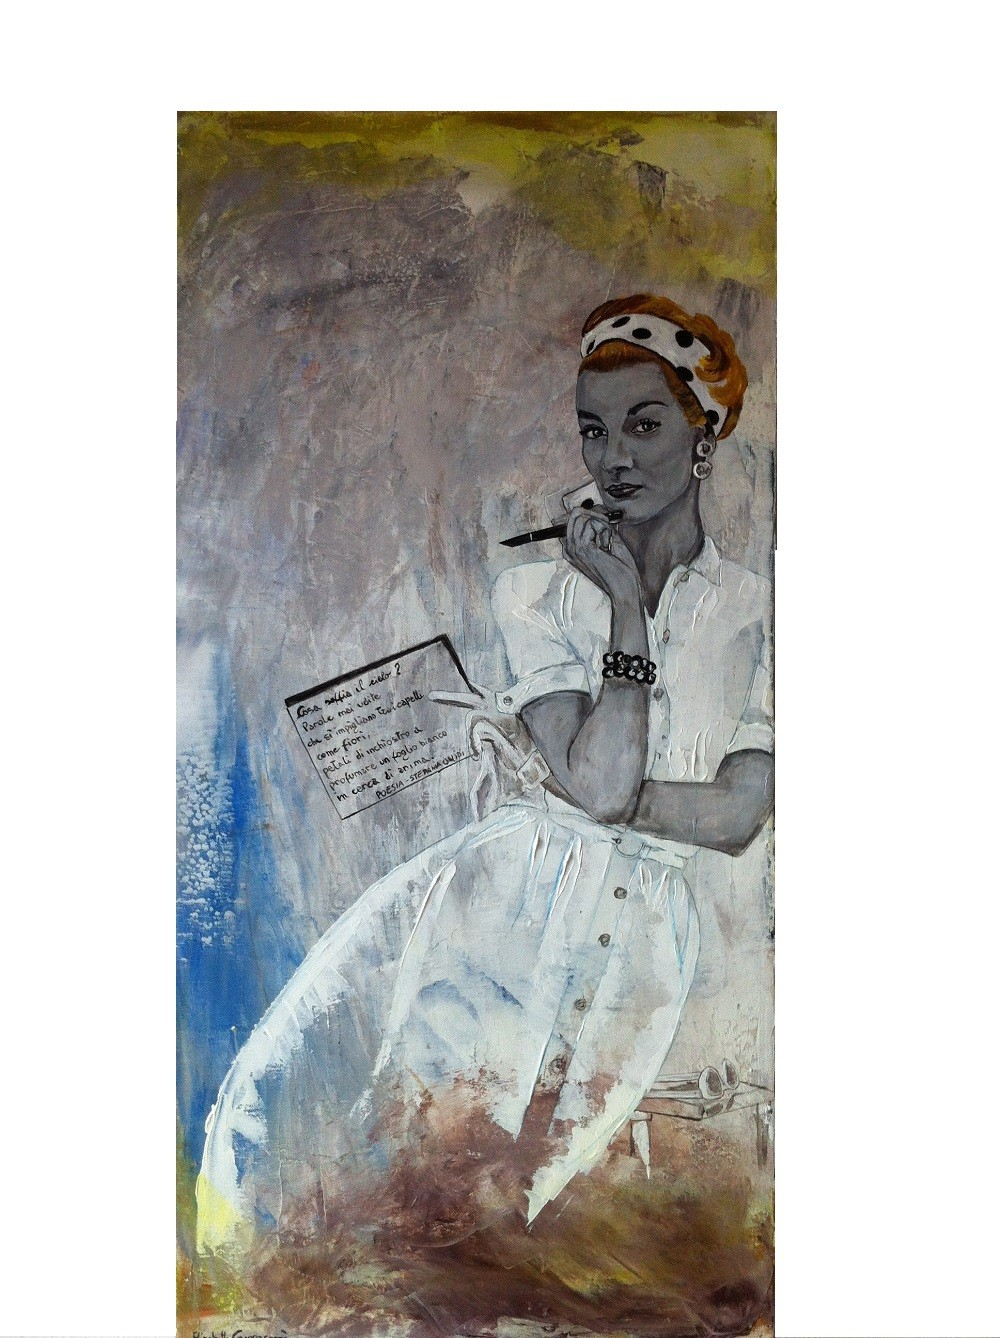 Profumo Di Donna Scent Of A Woman Painting By Elisabetta Grappasonni Artmajeur